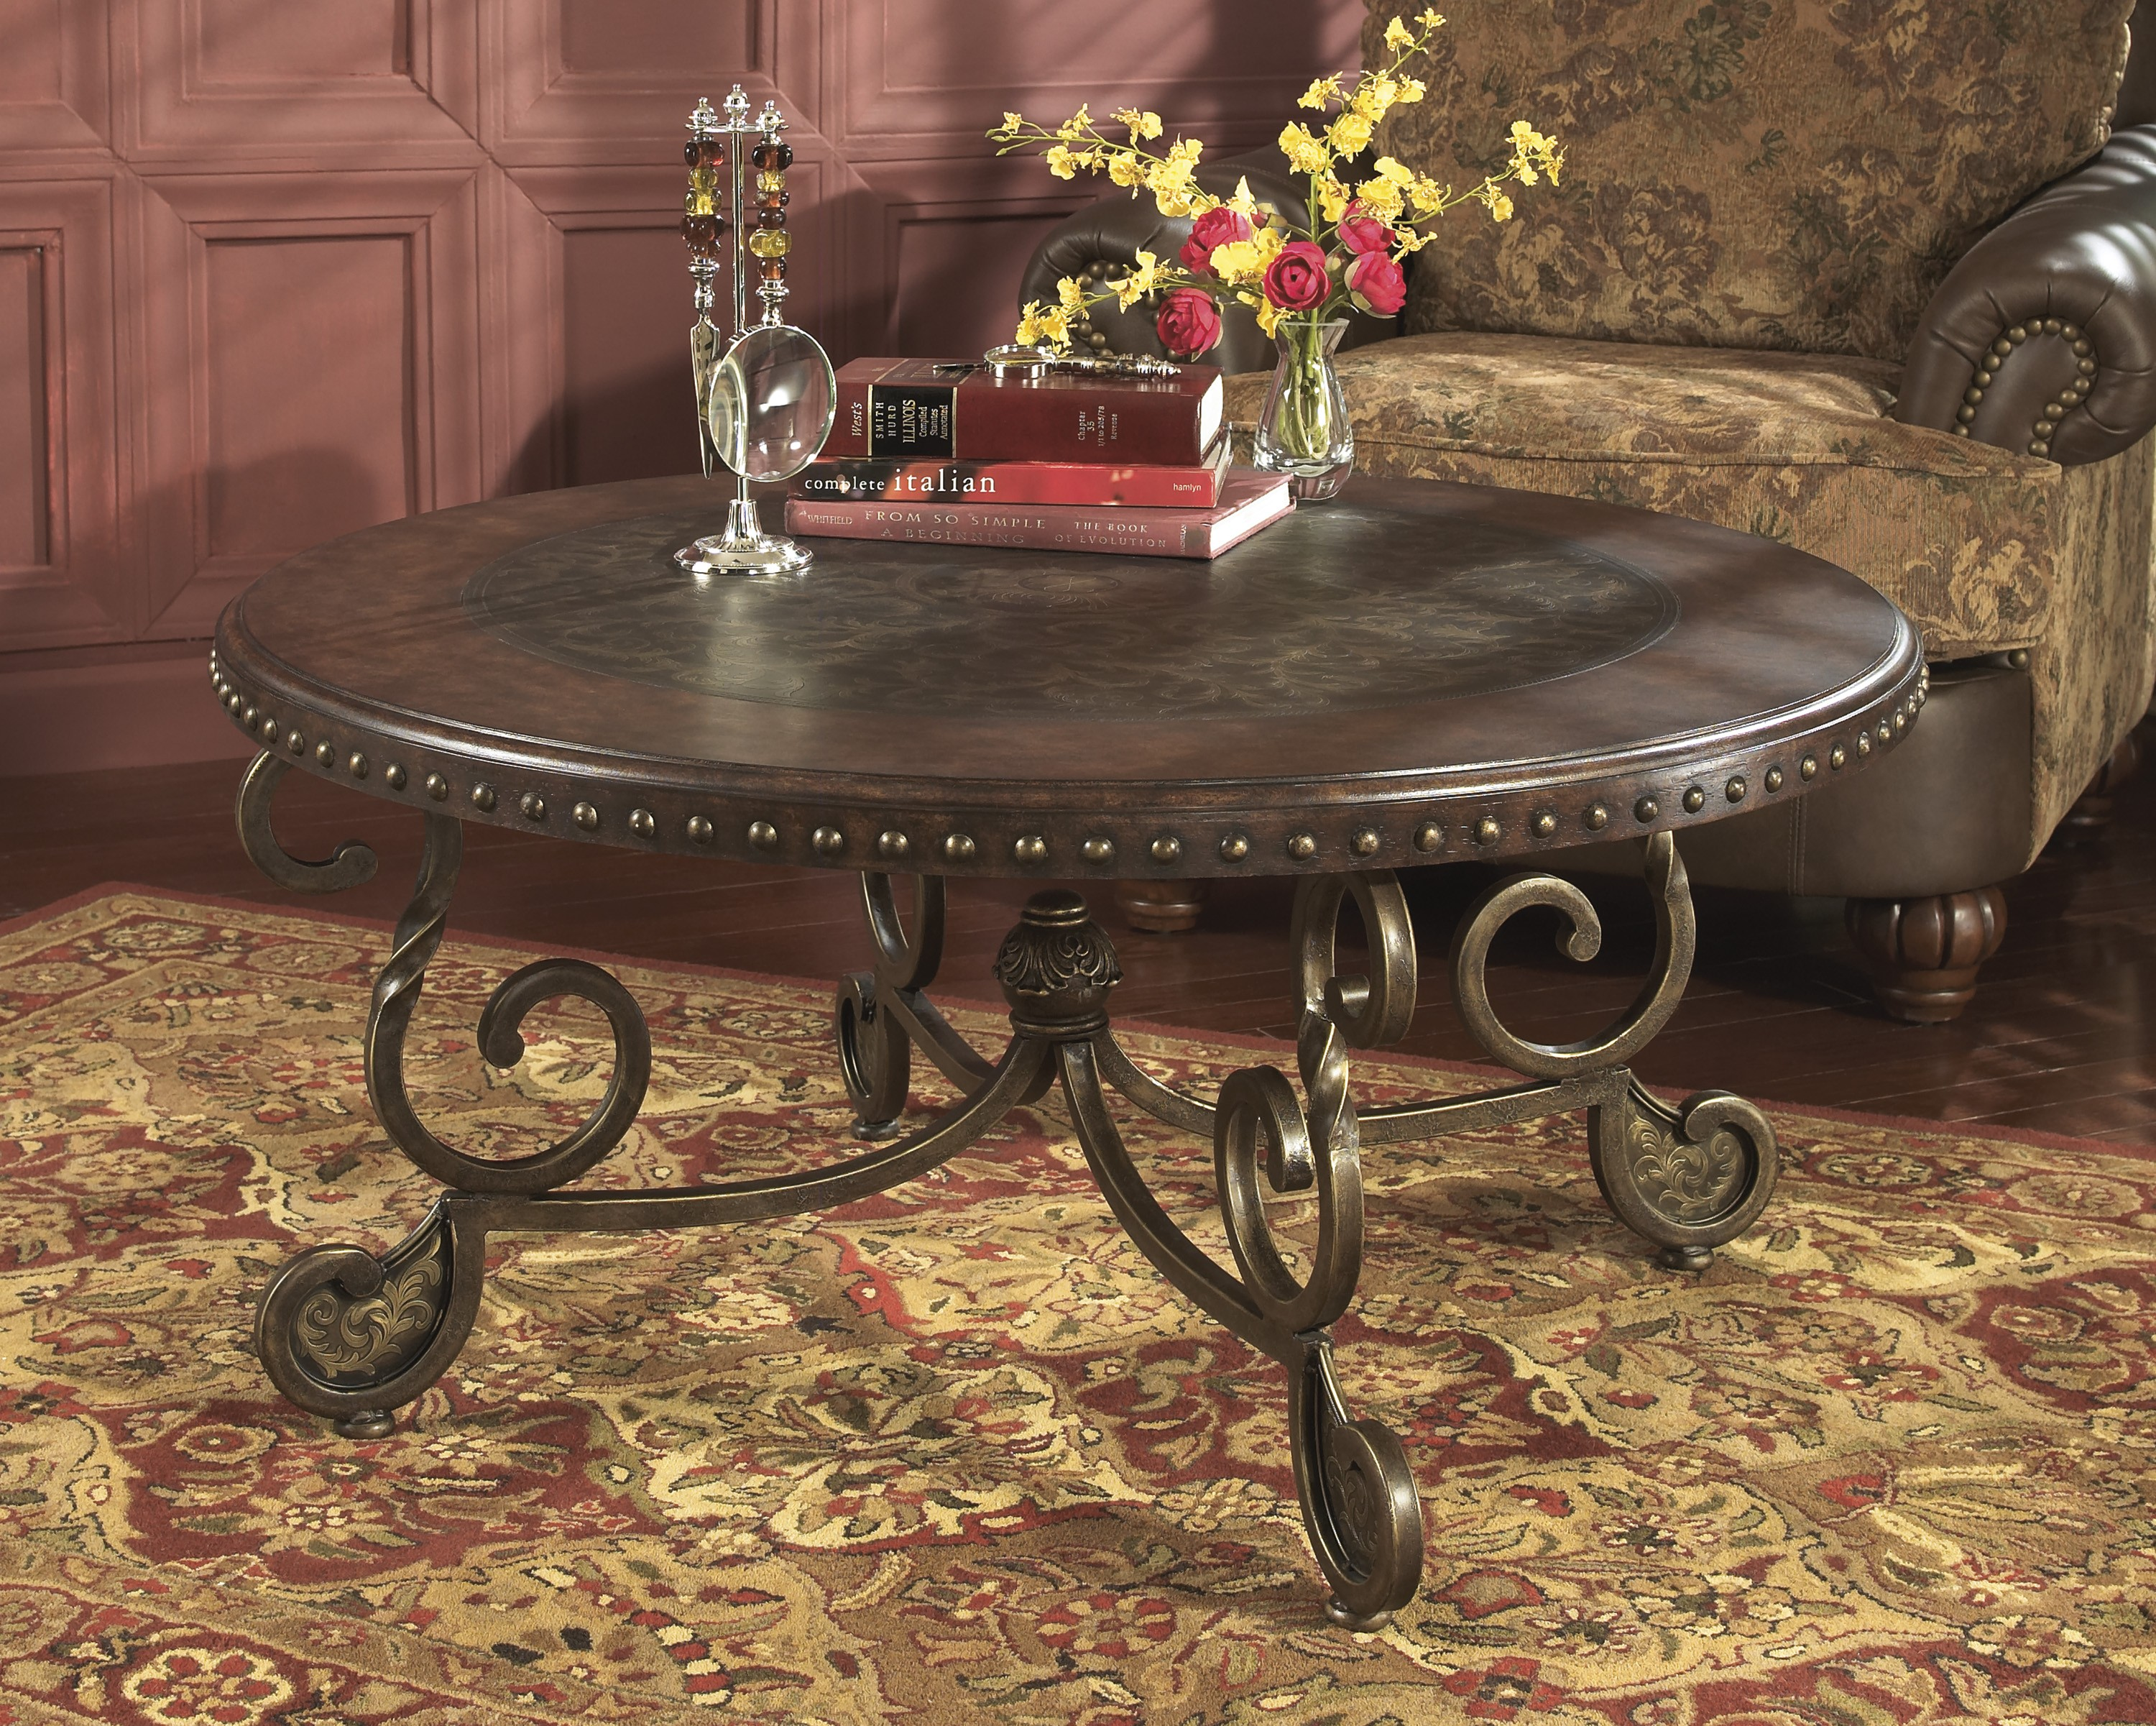 ashley furniture rafferty round cocktail table dark brown end tables coffee folding sizes iron accents thomasville good universal curated collection outside high top ethan allen